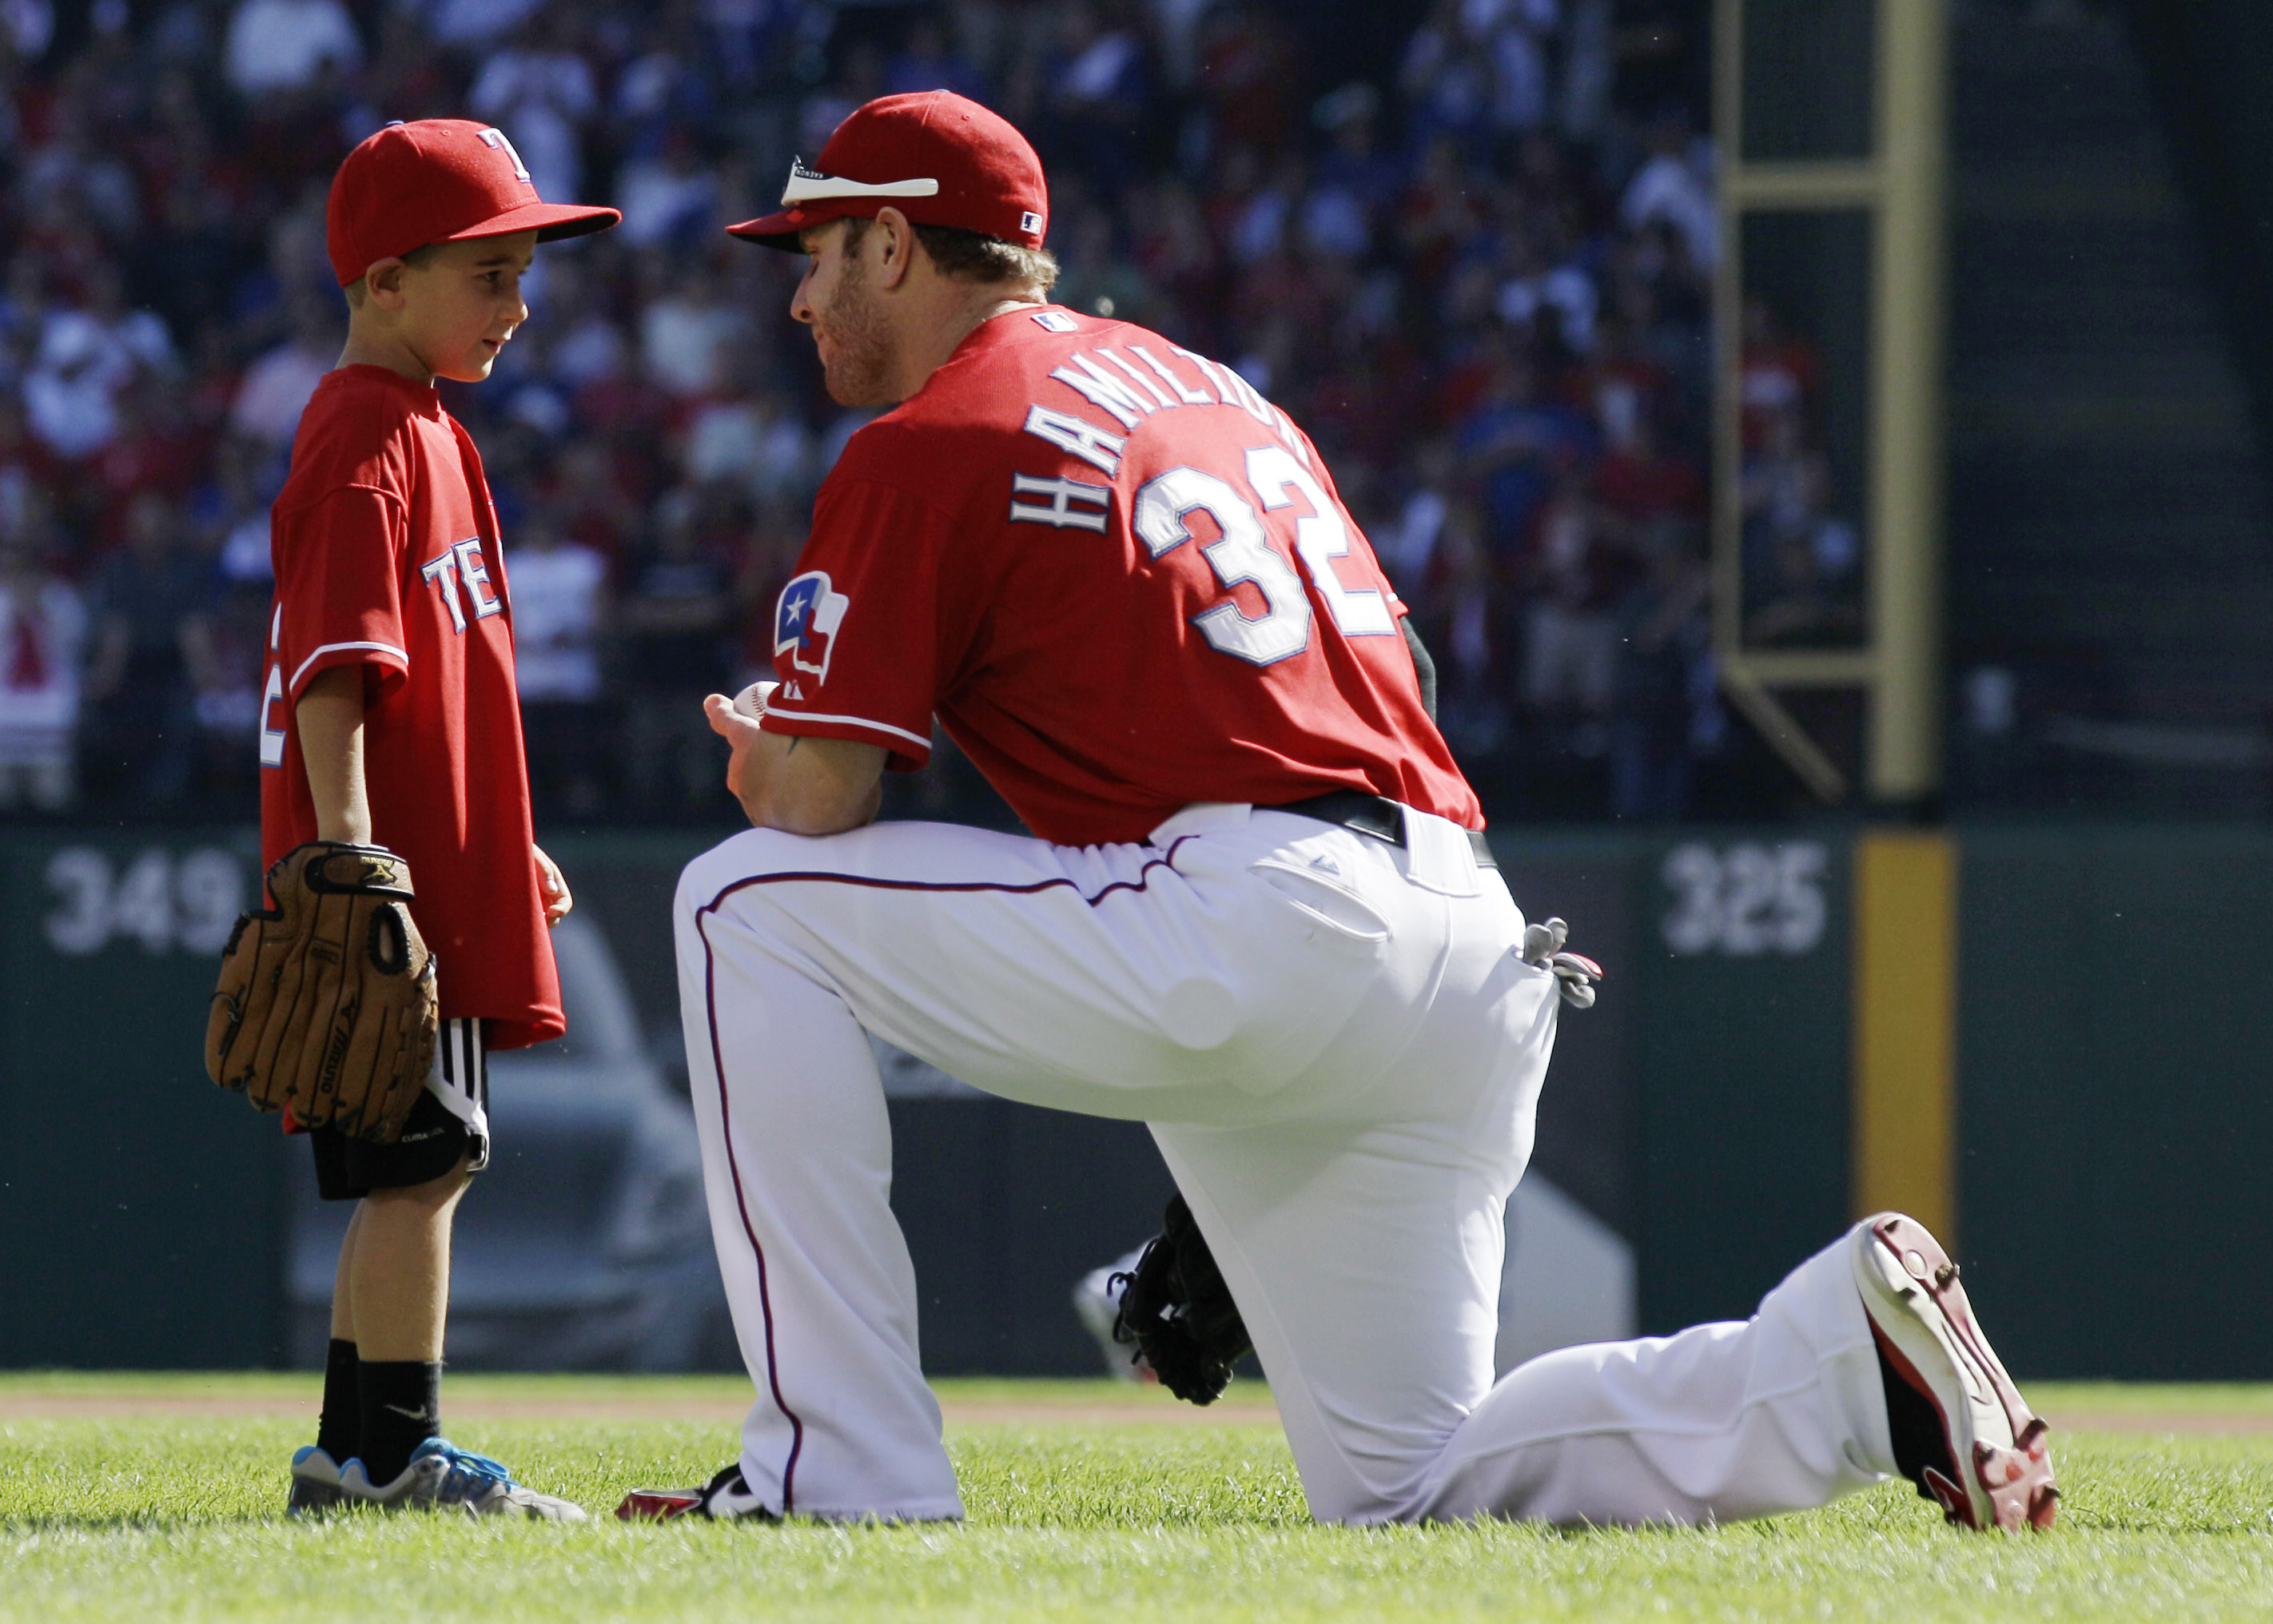 ADVANCE FOR WEEKEND EDITIONS, MAY 8-10 - FILE - In this Sept. 30, 2011, file photo, CooperStone, 6, talks with Texas Rangers left fielder Josh Hamilton after throwing out a ceremonial first pitch, before Game 1 of baseball's American League division serie